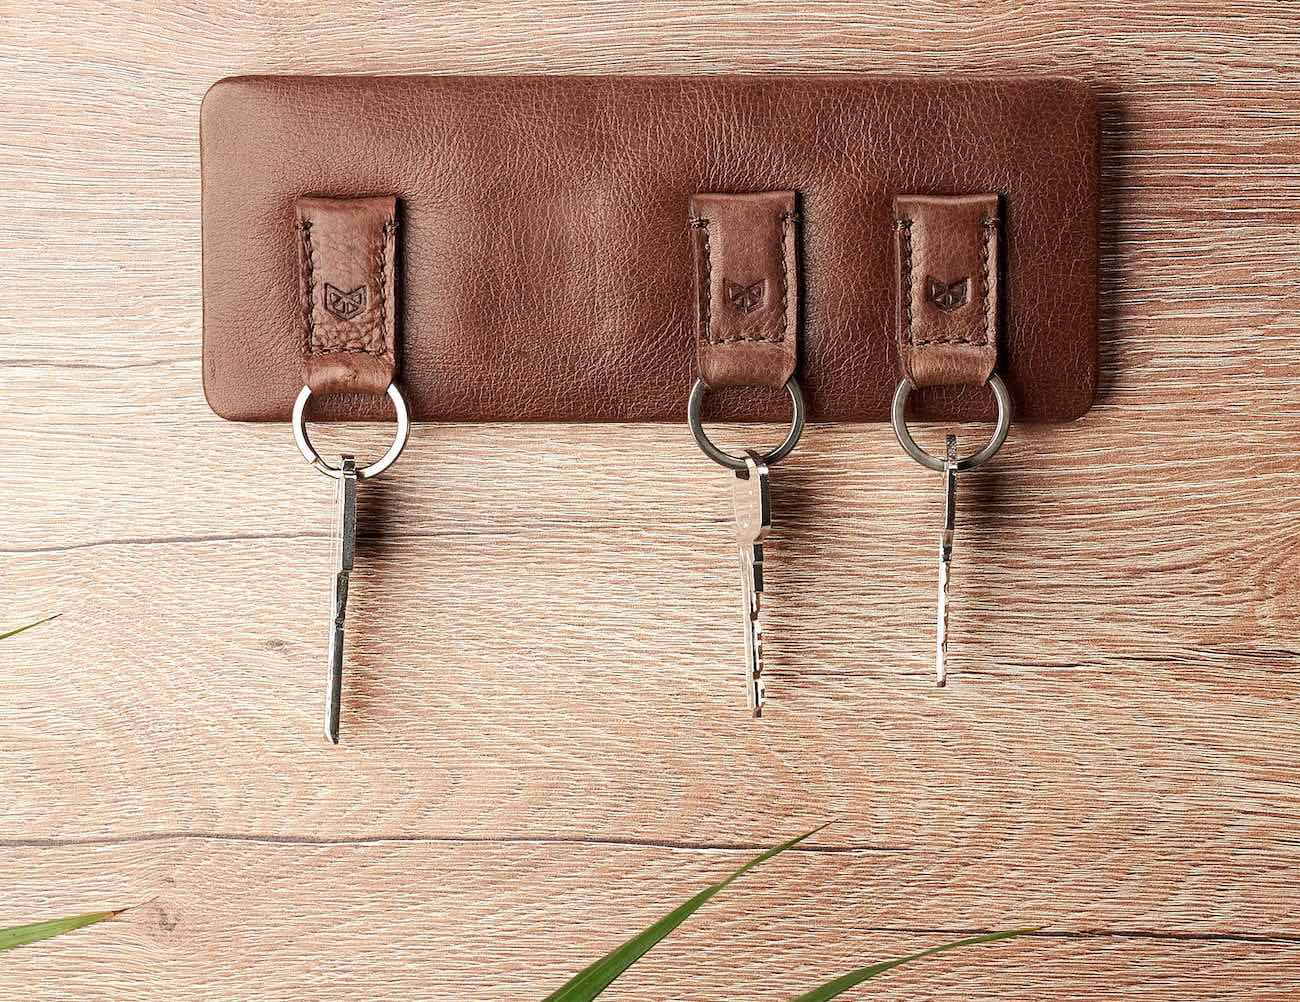 Capra Magnetic Leather Key Holder comes with up to 4 hooks